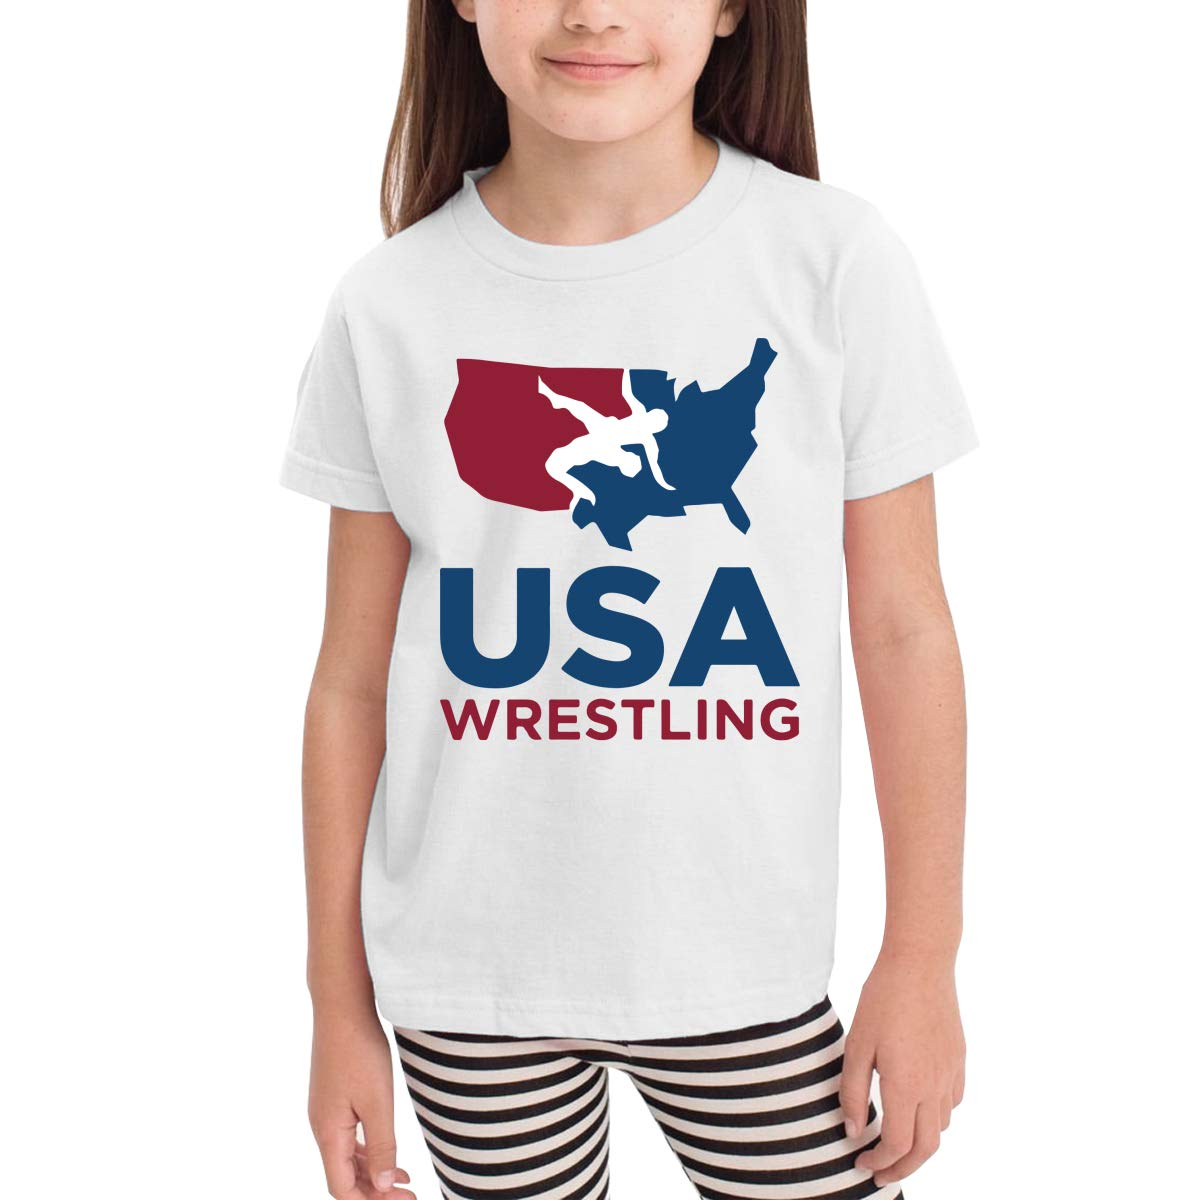 Onlybabycare USA Wrestling 100/% Cotton Toddler Boys Girls Kids Short Sleeve T Shirt Top Tee Clothes